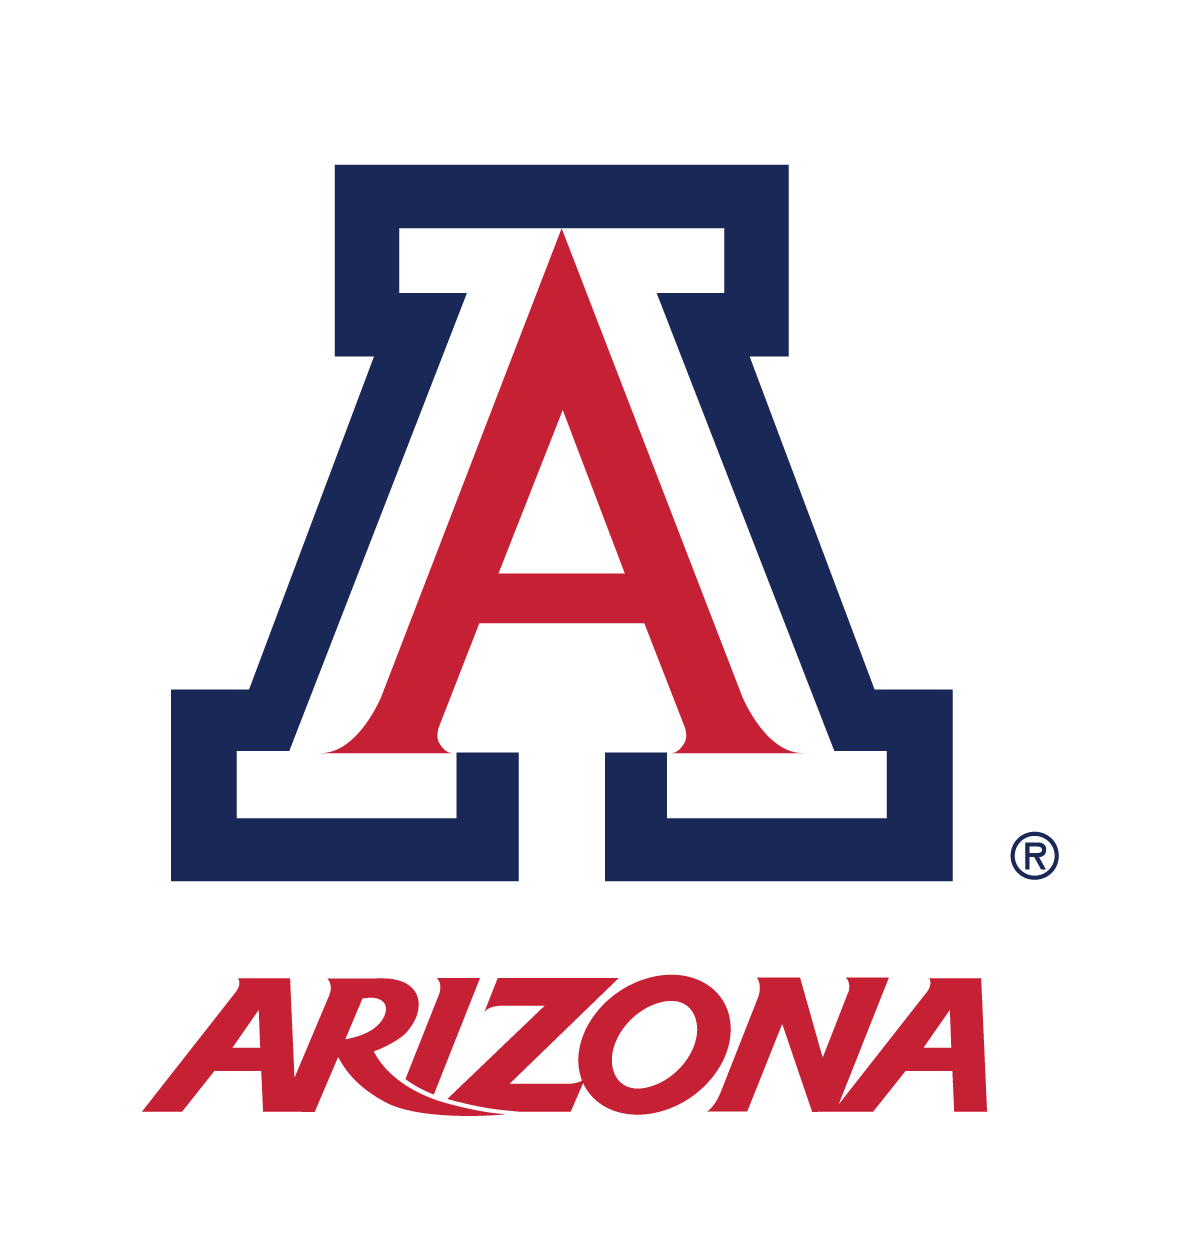 11/24: Arizona Football vs Arizona State